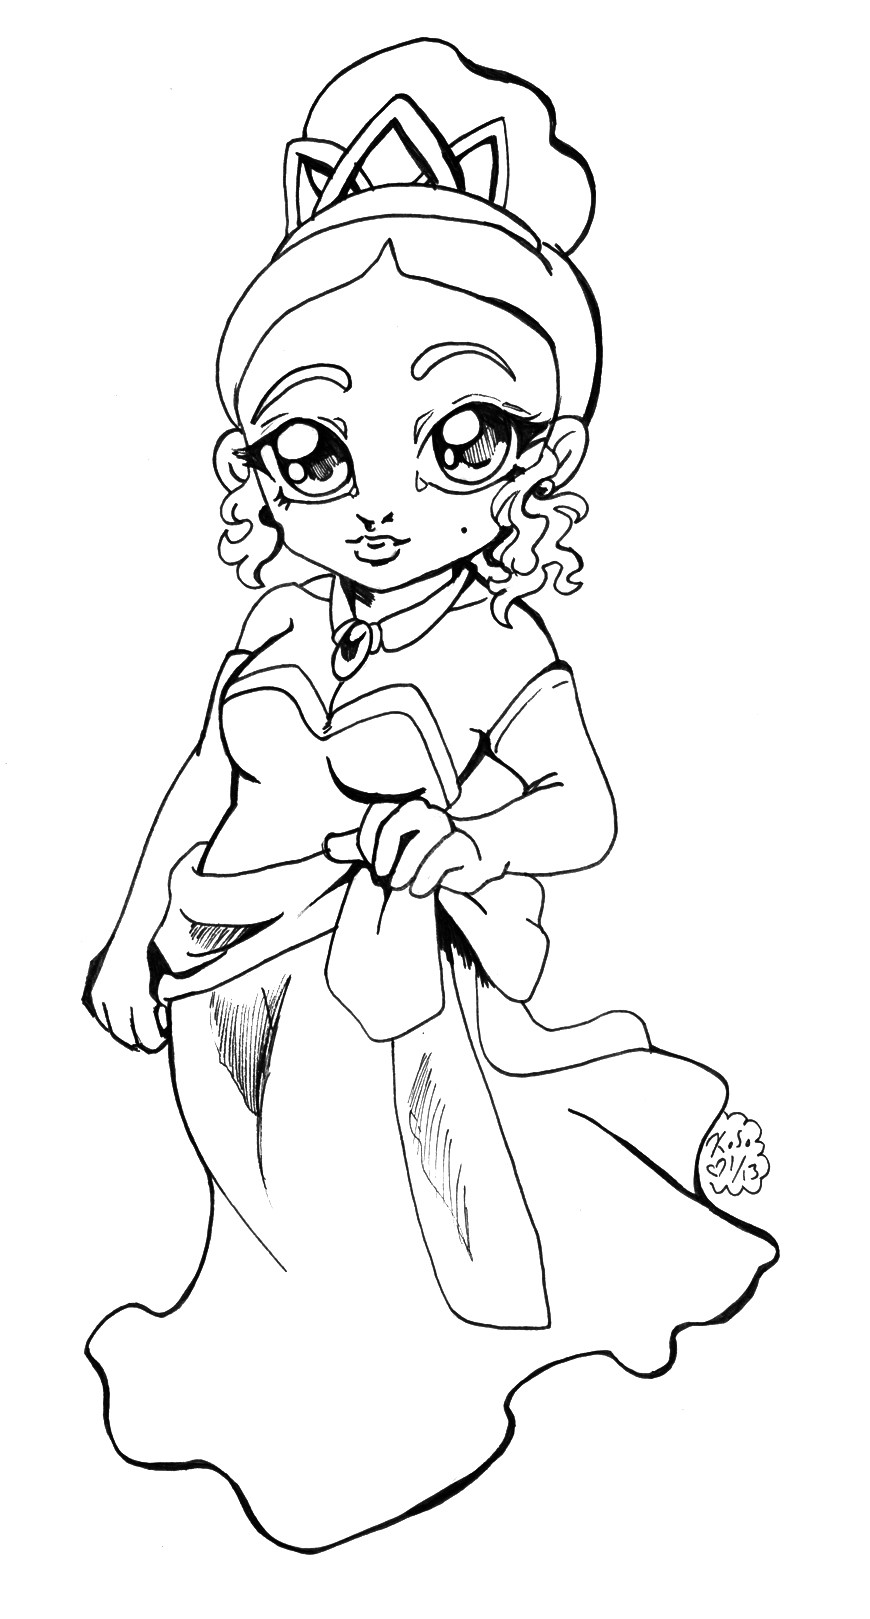 disney chibis coloring pages - photo#2